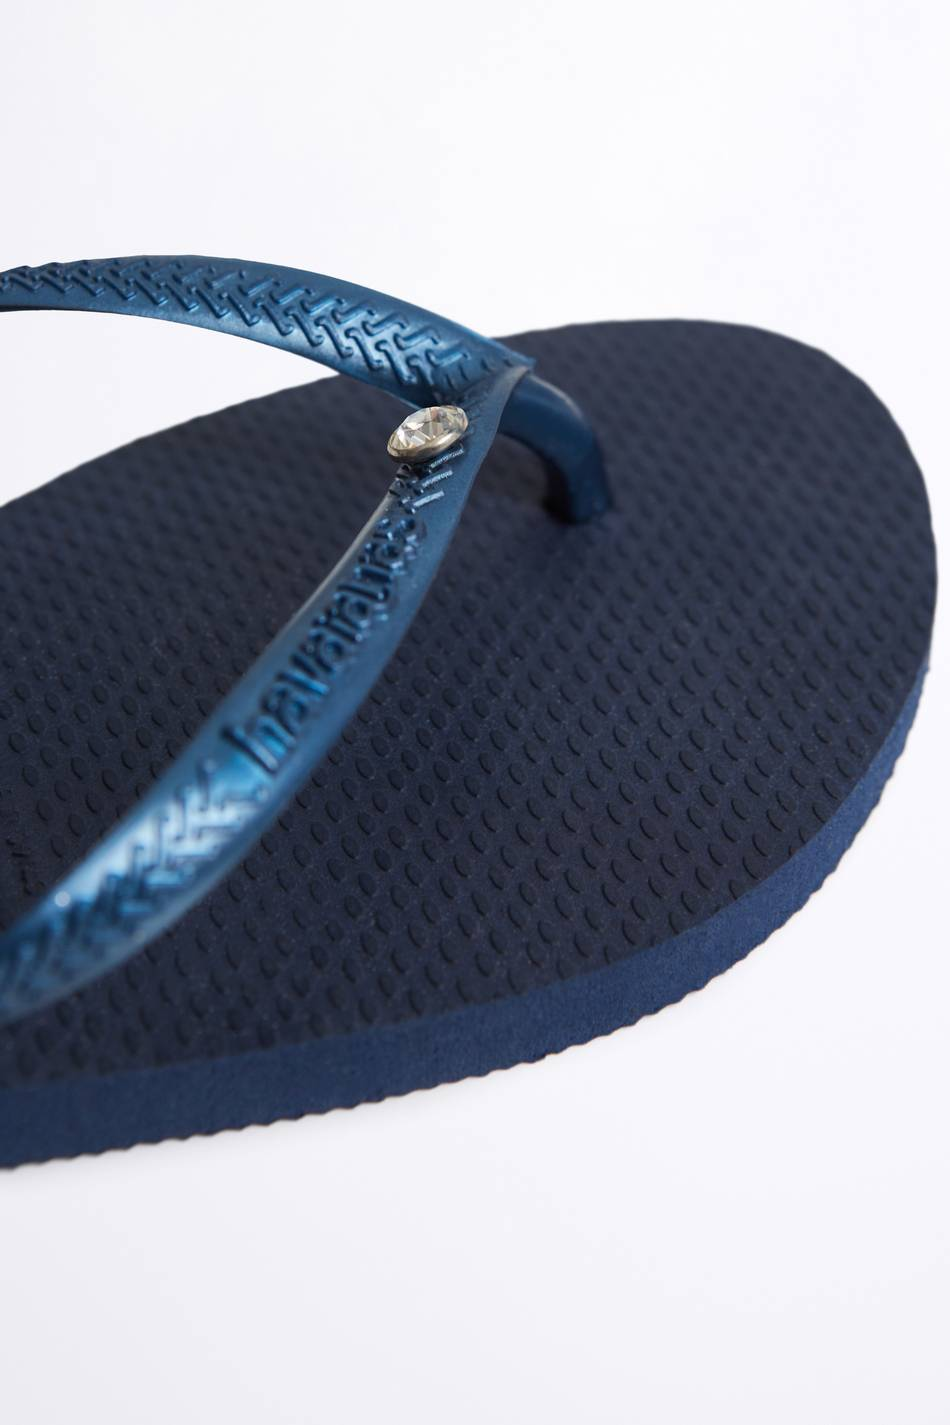 Gina Tricot Havaianas crystal flip flops